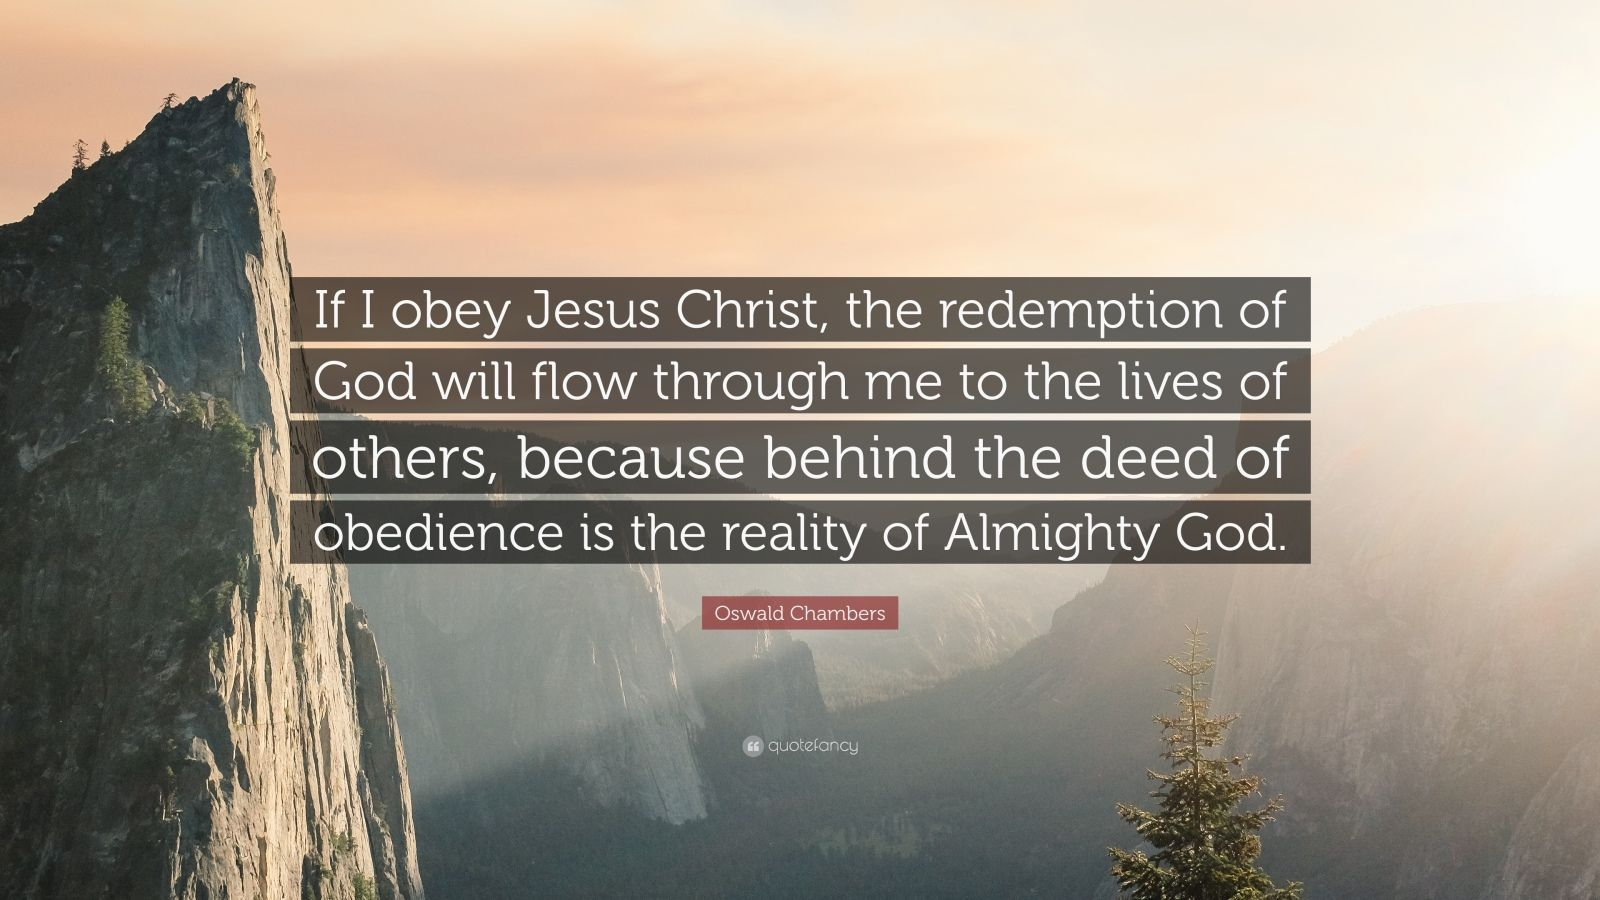 """Oswald Chambers Quote: """"If I obey Jesus Christ, the redemption of God will flow through me to the lives of others, because behind the deed of obedience is the reality of Almighty God."""""""